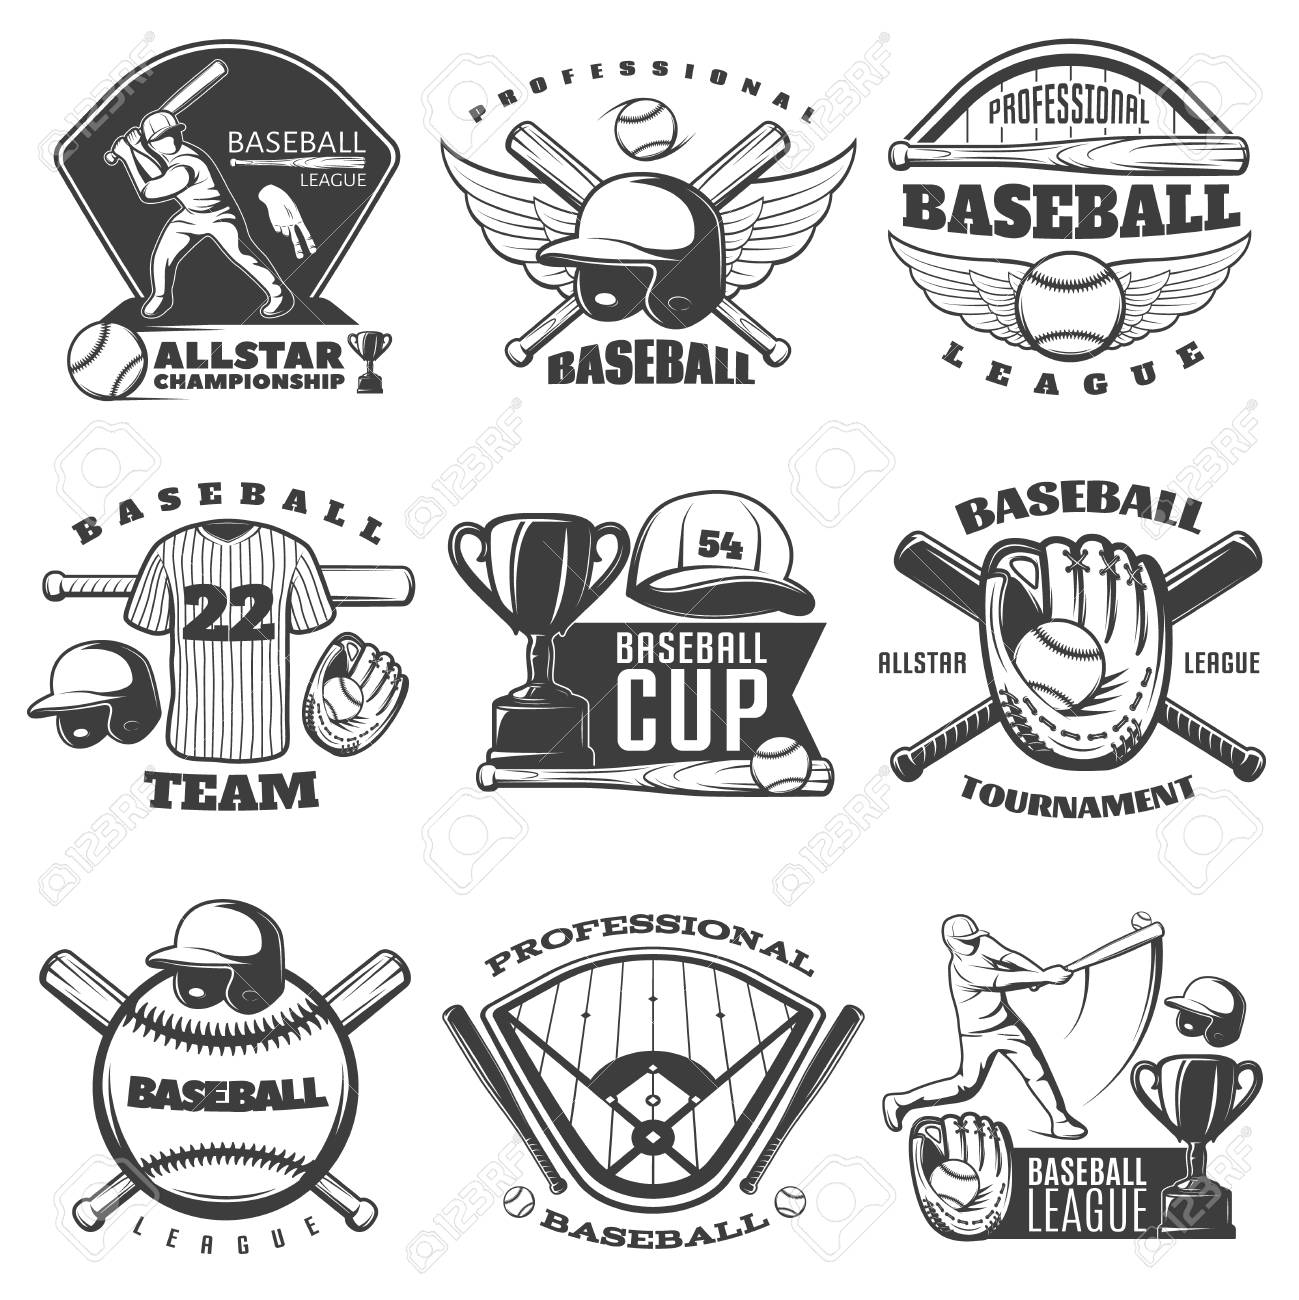 hight resolution of baseball black white emblems of teams and tournaments with sports equipment cup player isolated vector illustration